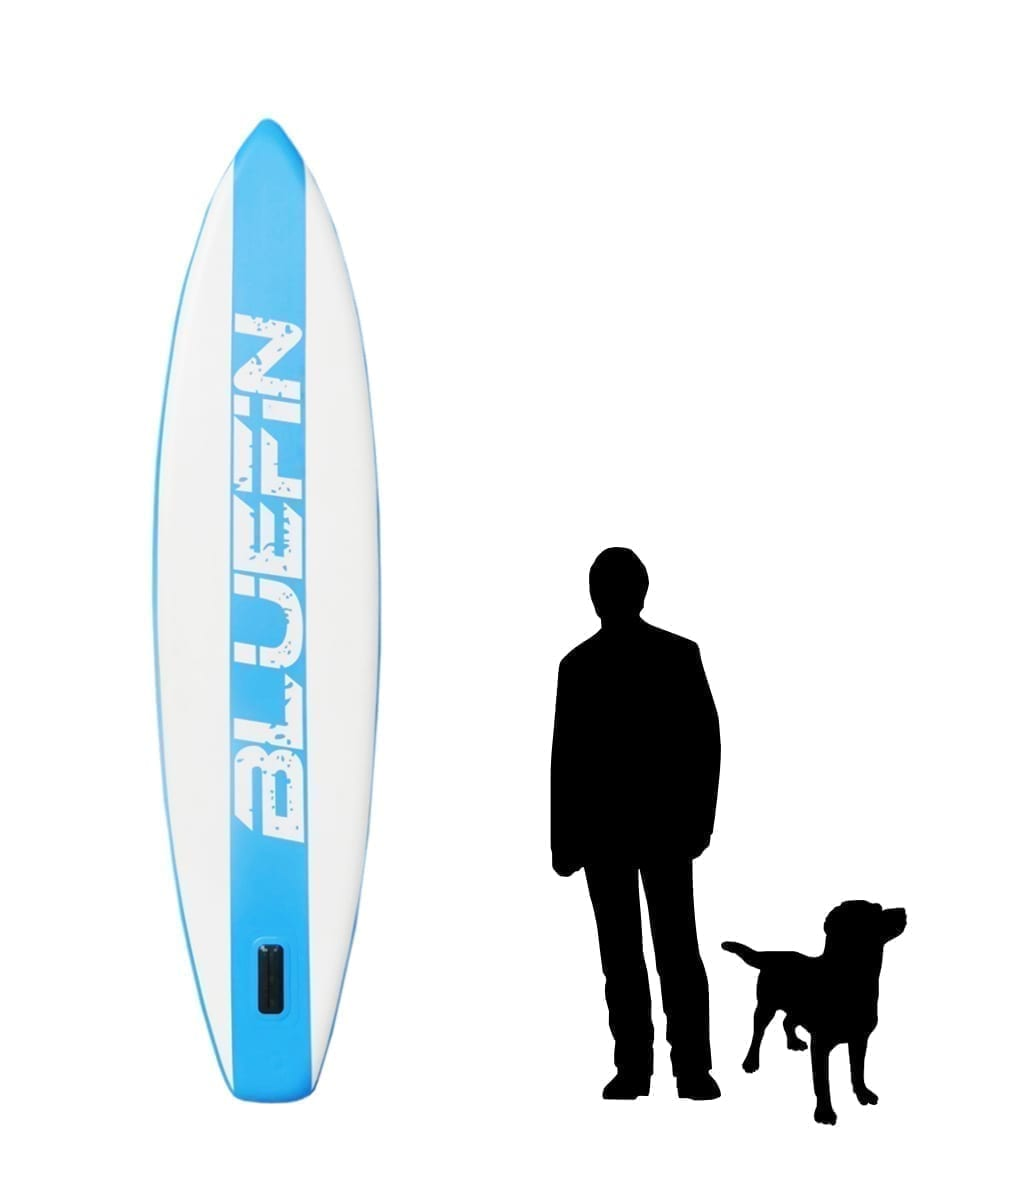 Bluefin inflatable stand up paddle board comparison